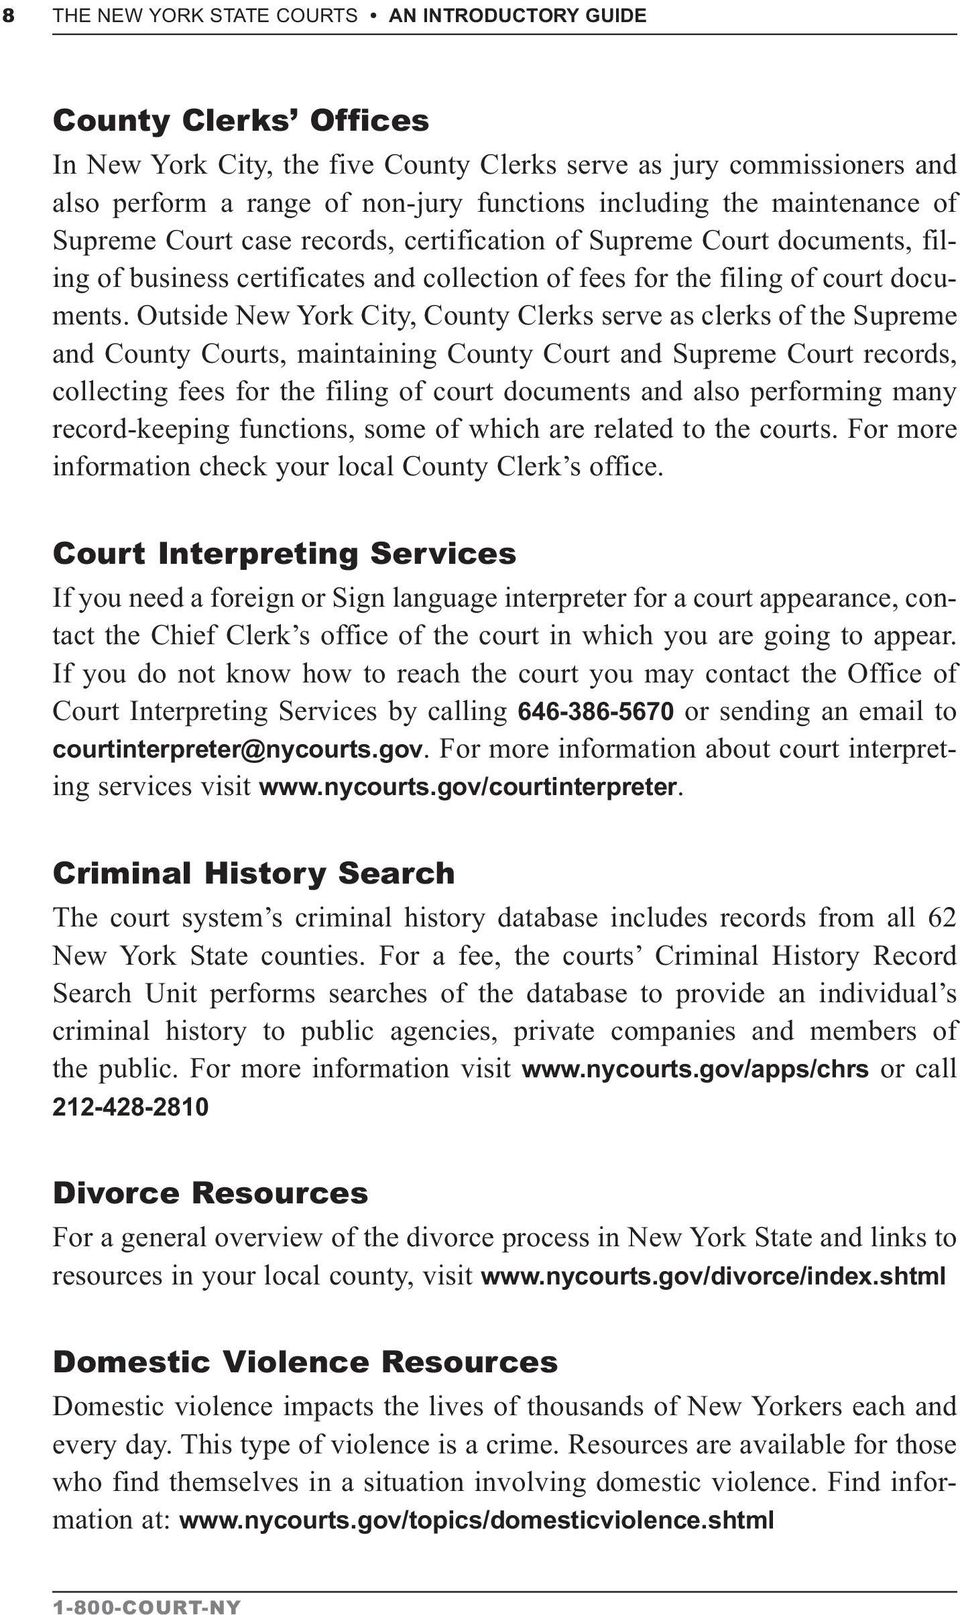 Outside New York City, County Clerks serve as clerks of the Supreme and County Courts, maintaining County Court and Supreme Court records, collecting fees for the filing of court documents and also